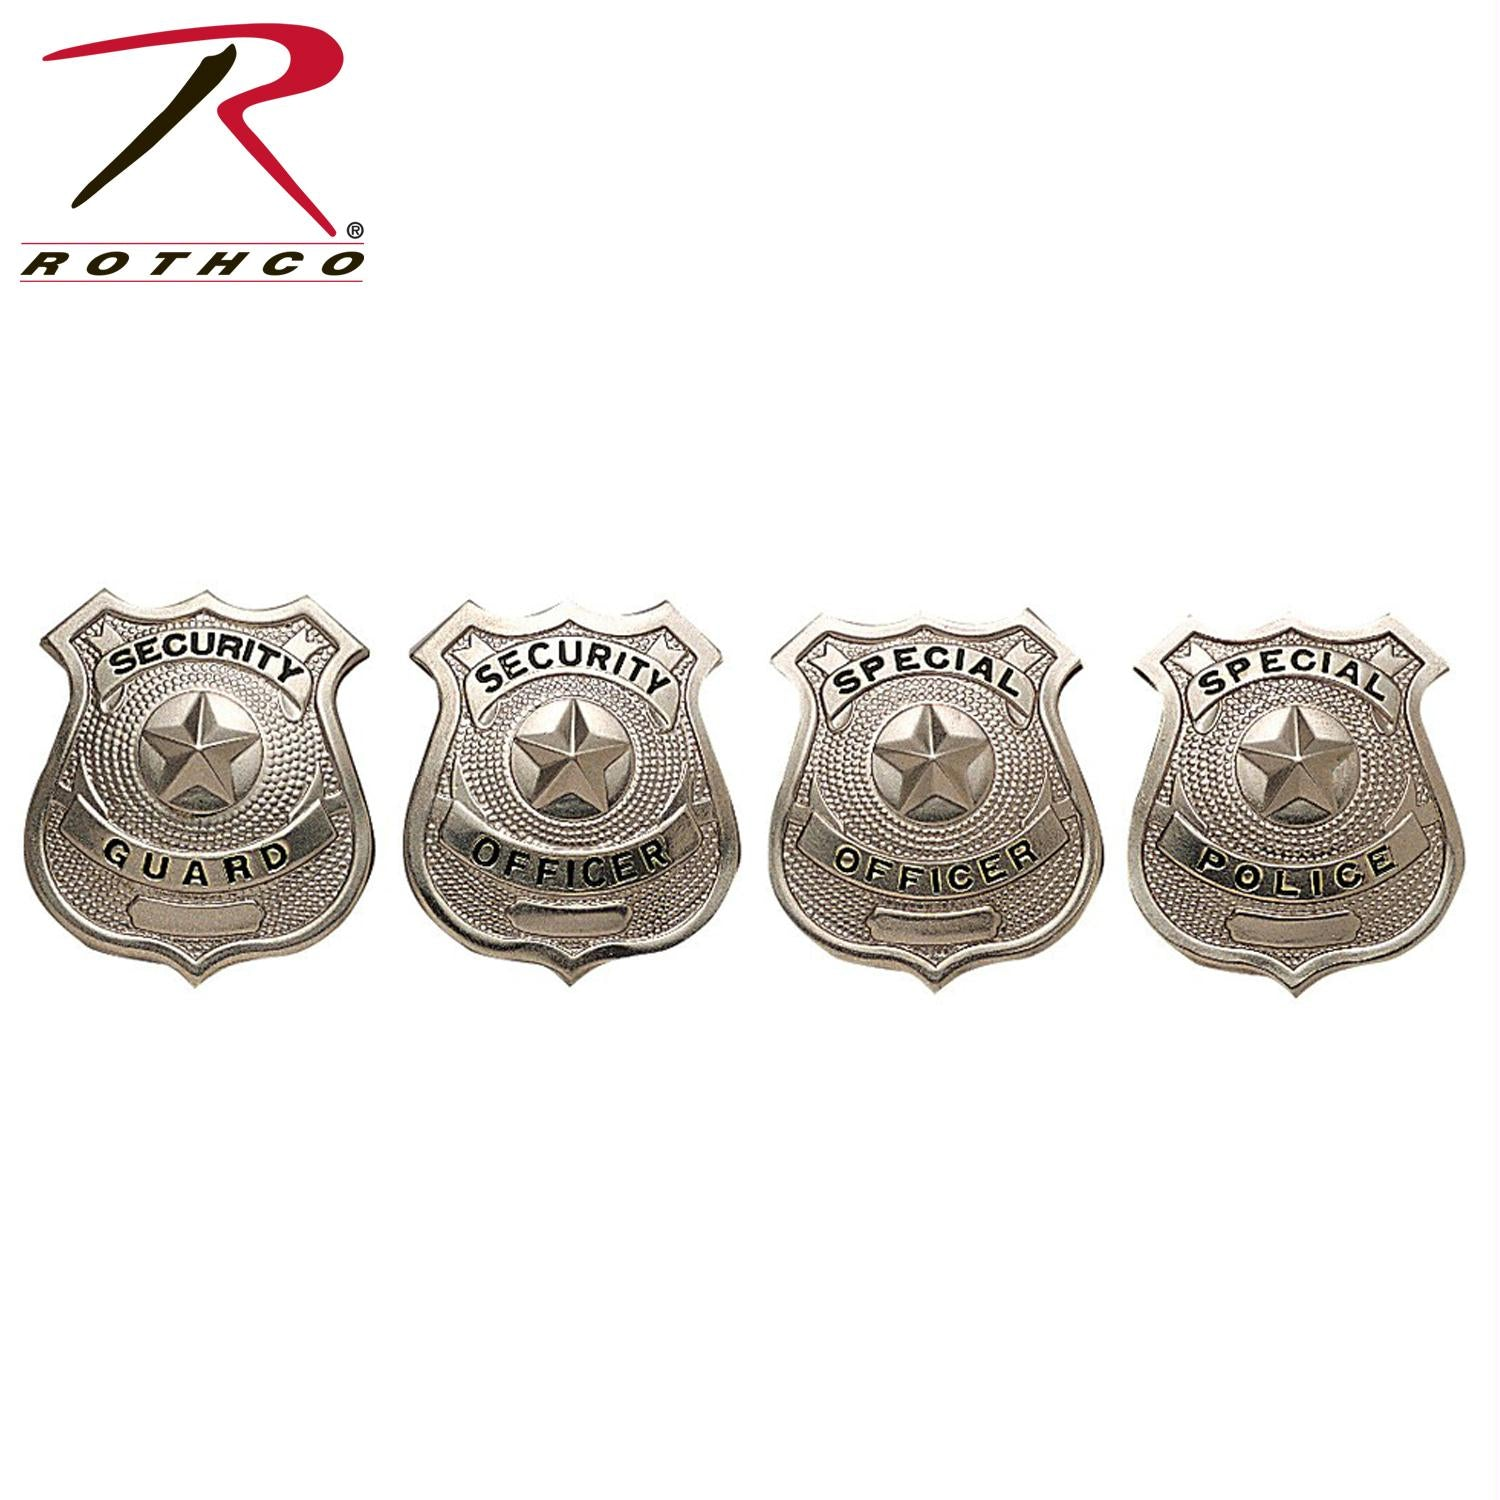 Rothco Special Officer Badge - Silver